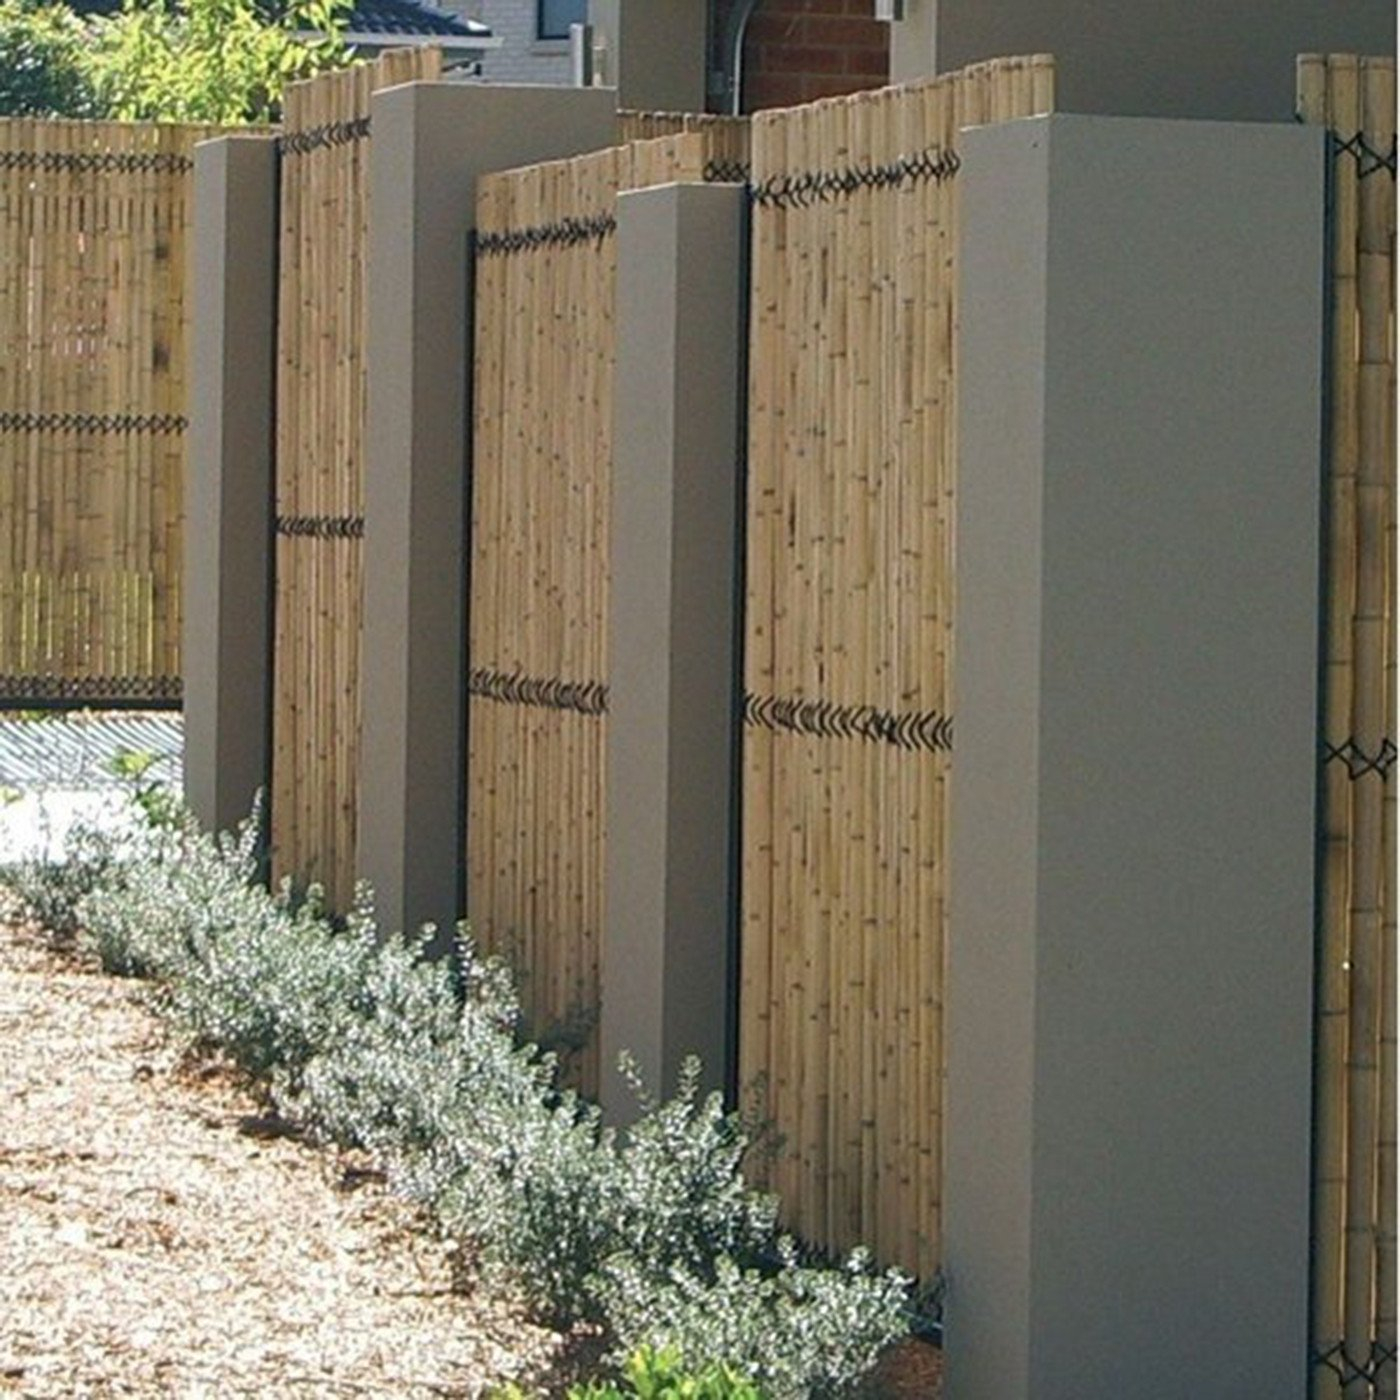 Privacy Screens Screening Ideas Gallery Chippys Outdoor throughout 12 Clever Ways How to Make Backyard Screening Ideas